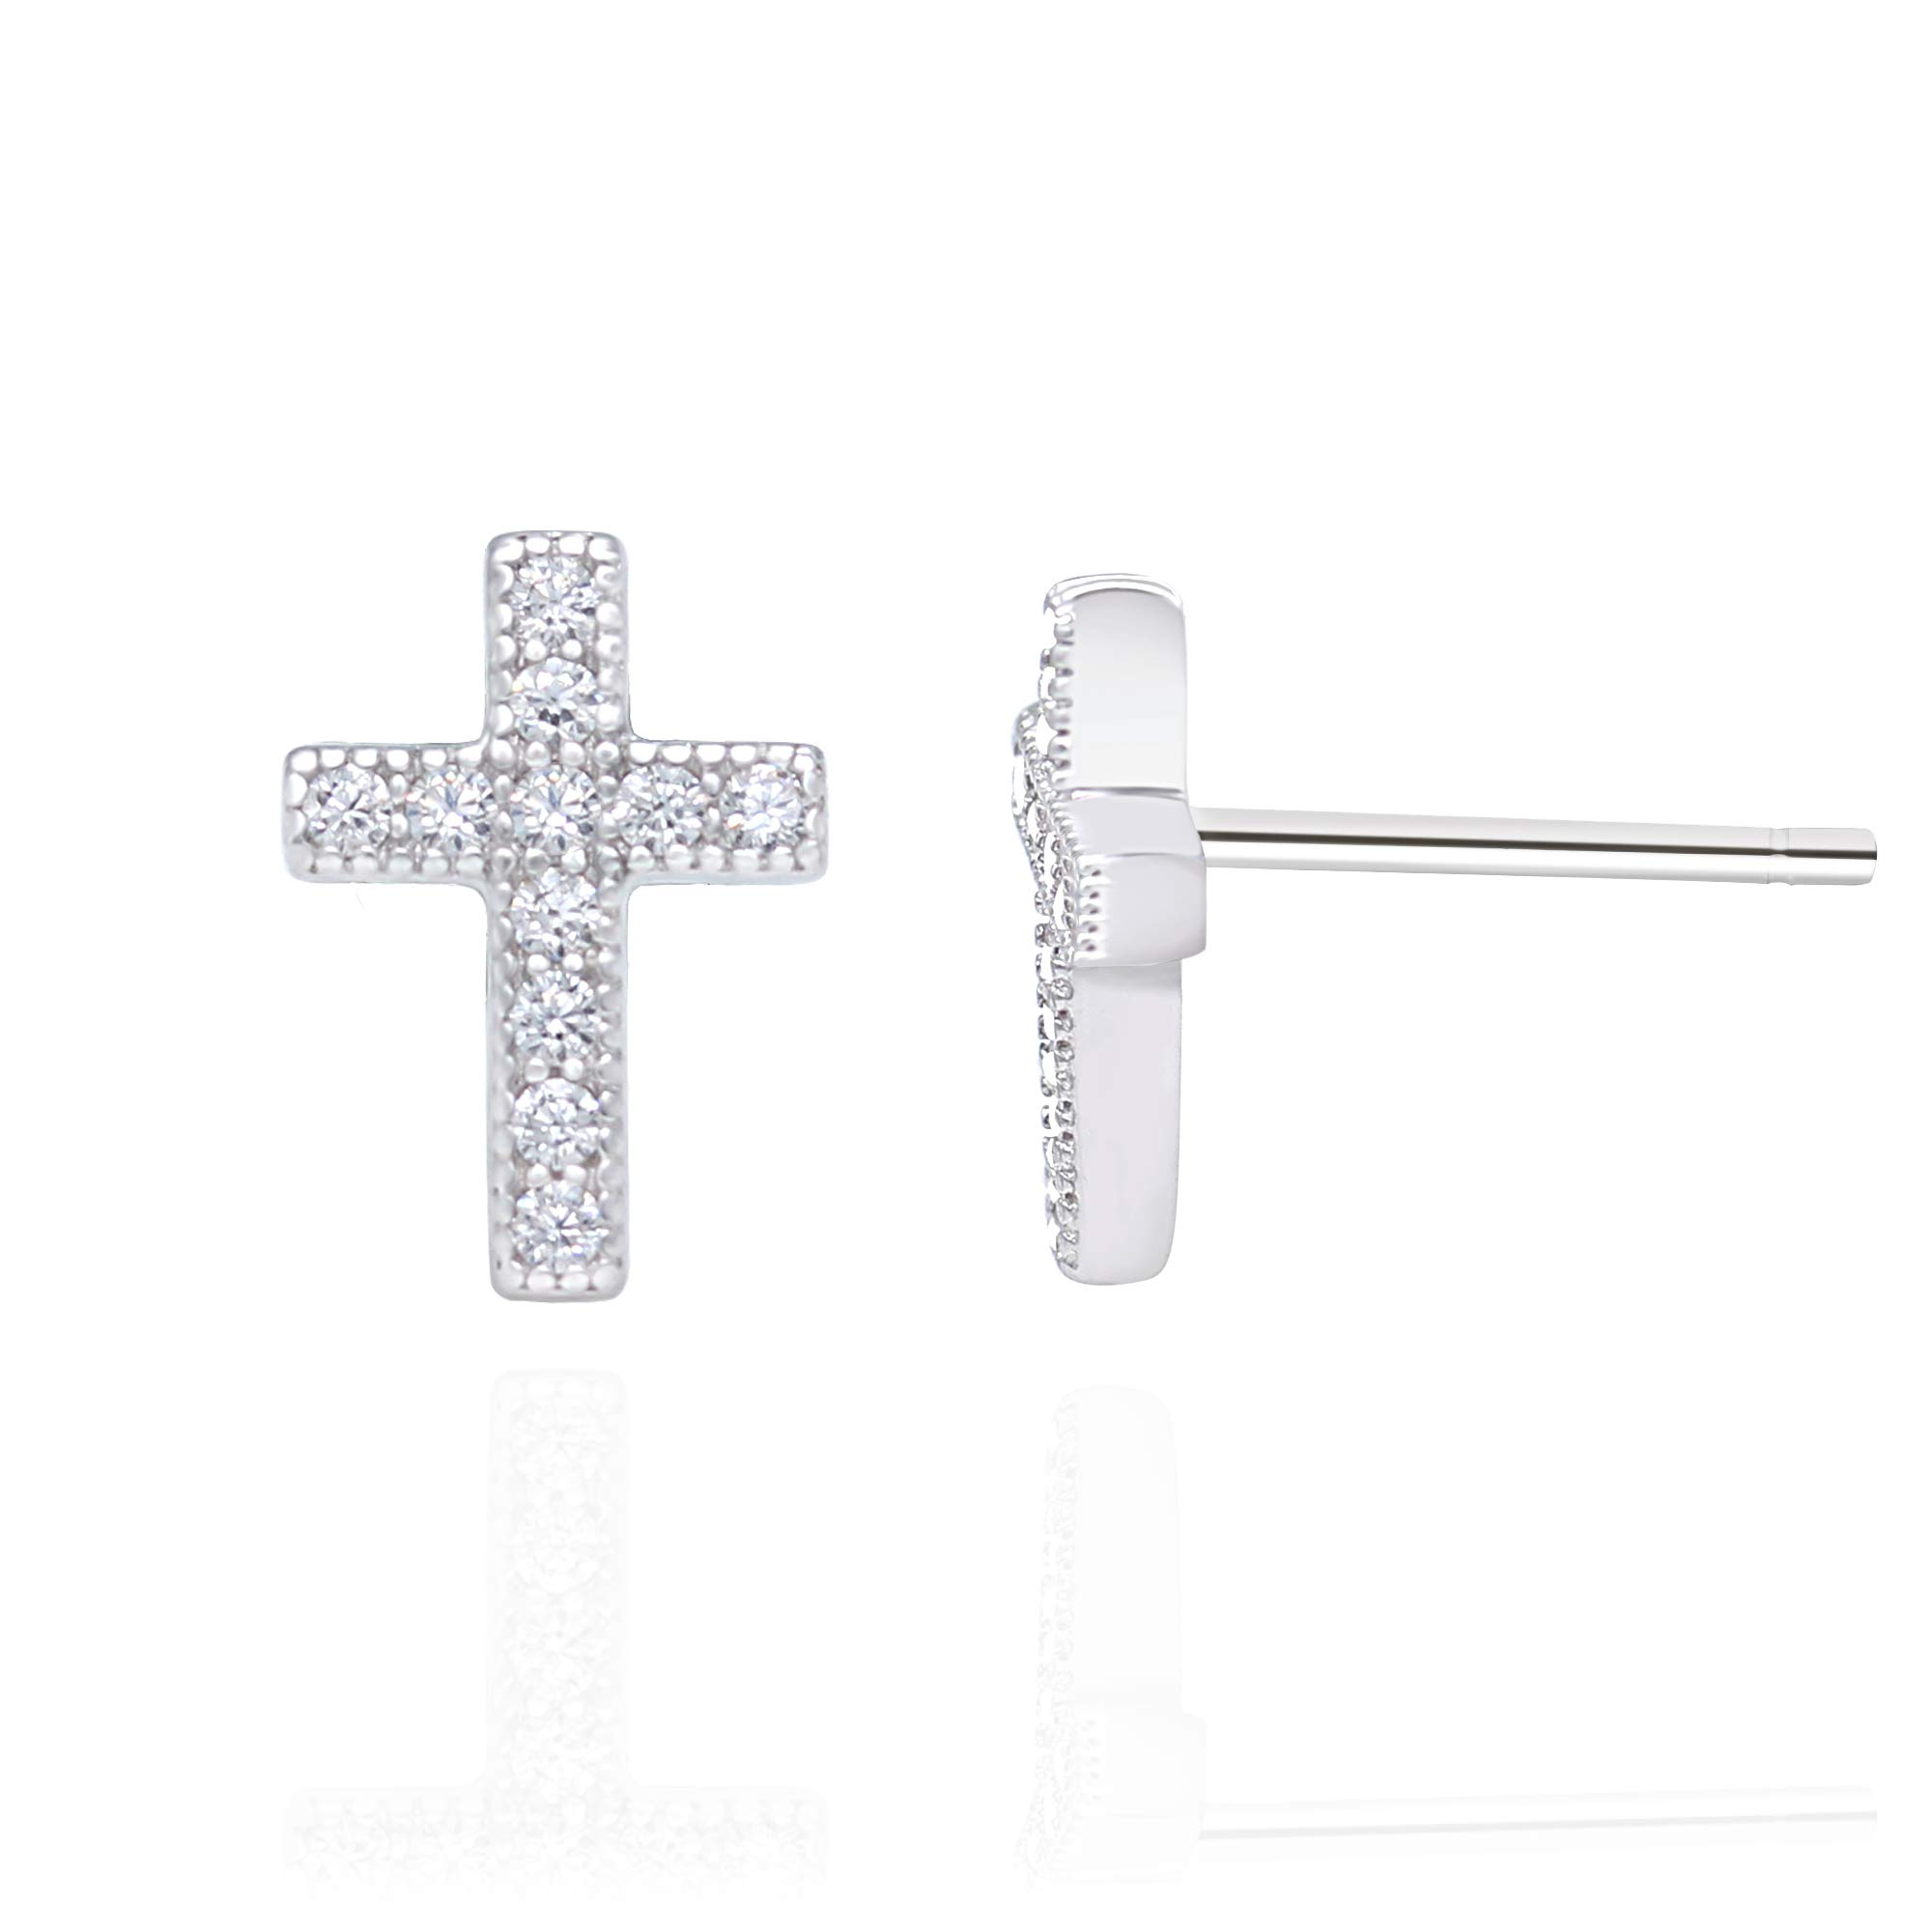 Rhodium Plated Sterling Silver Cubic Zirconia Classic Mini Cross Stud Earrings